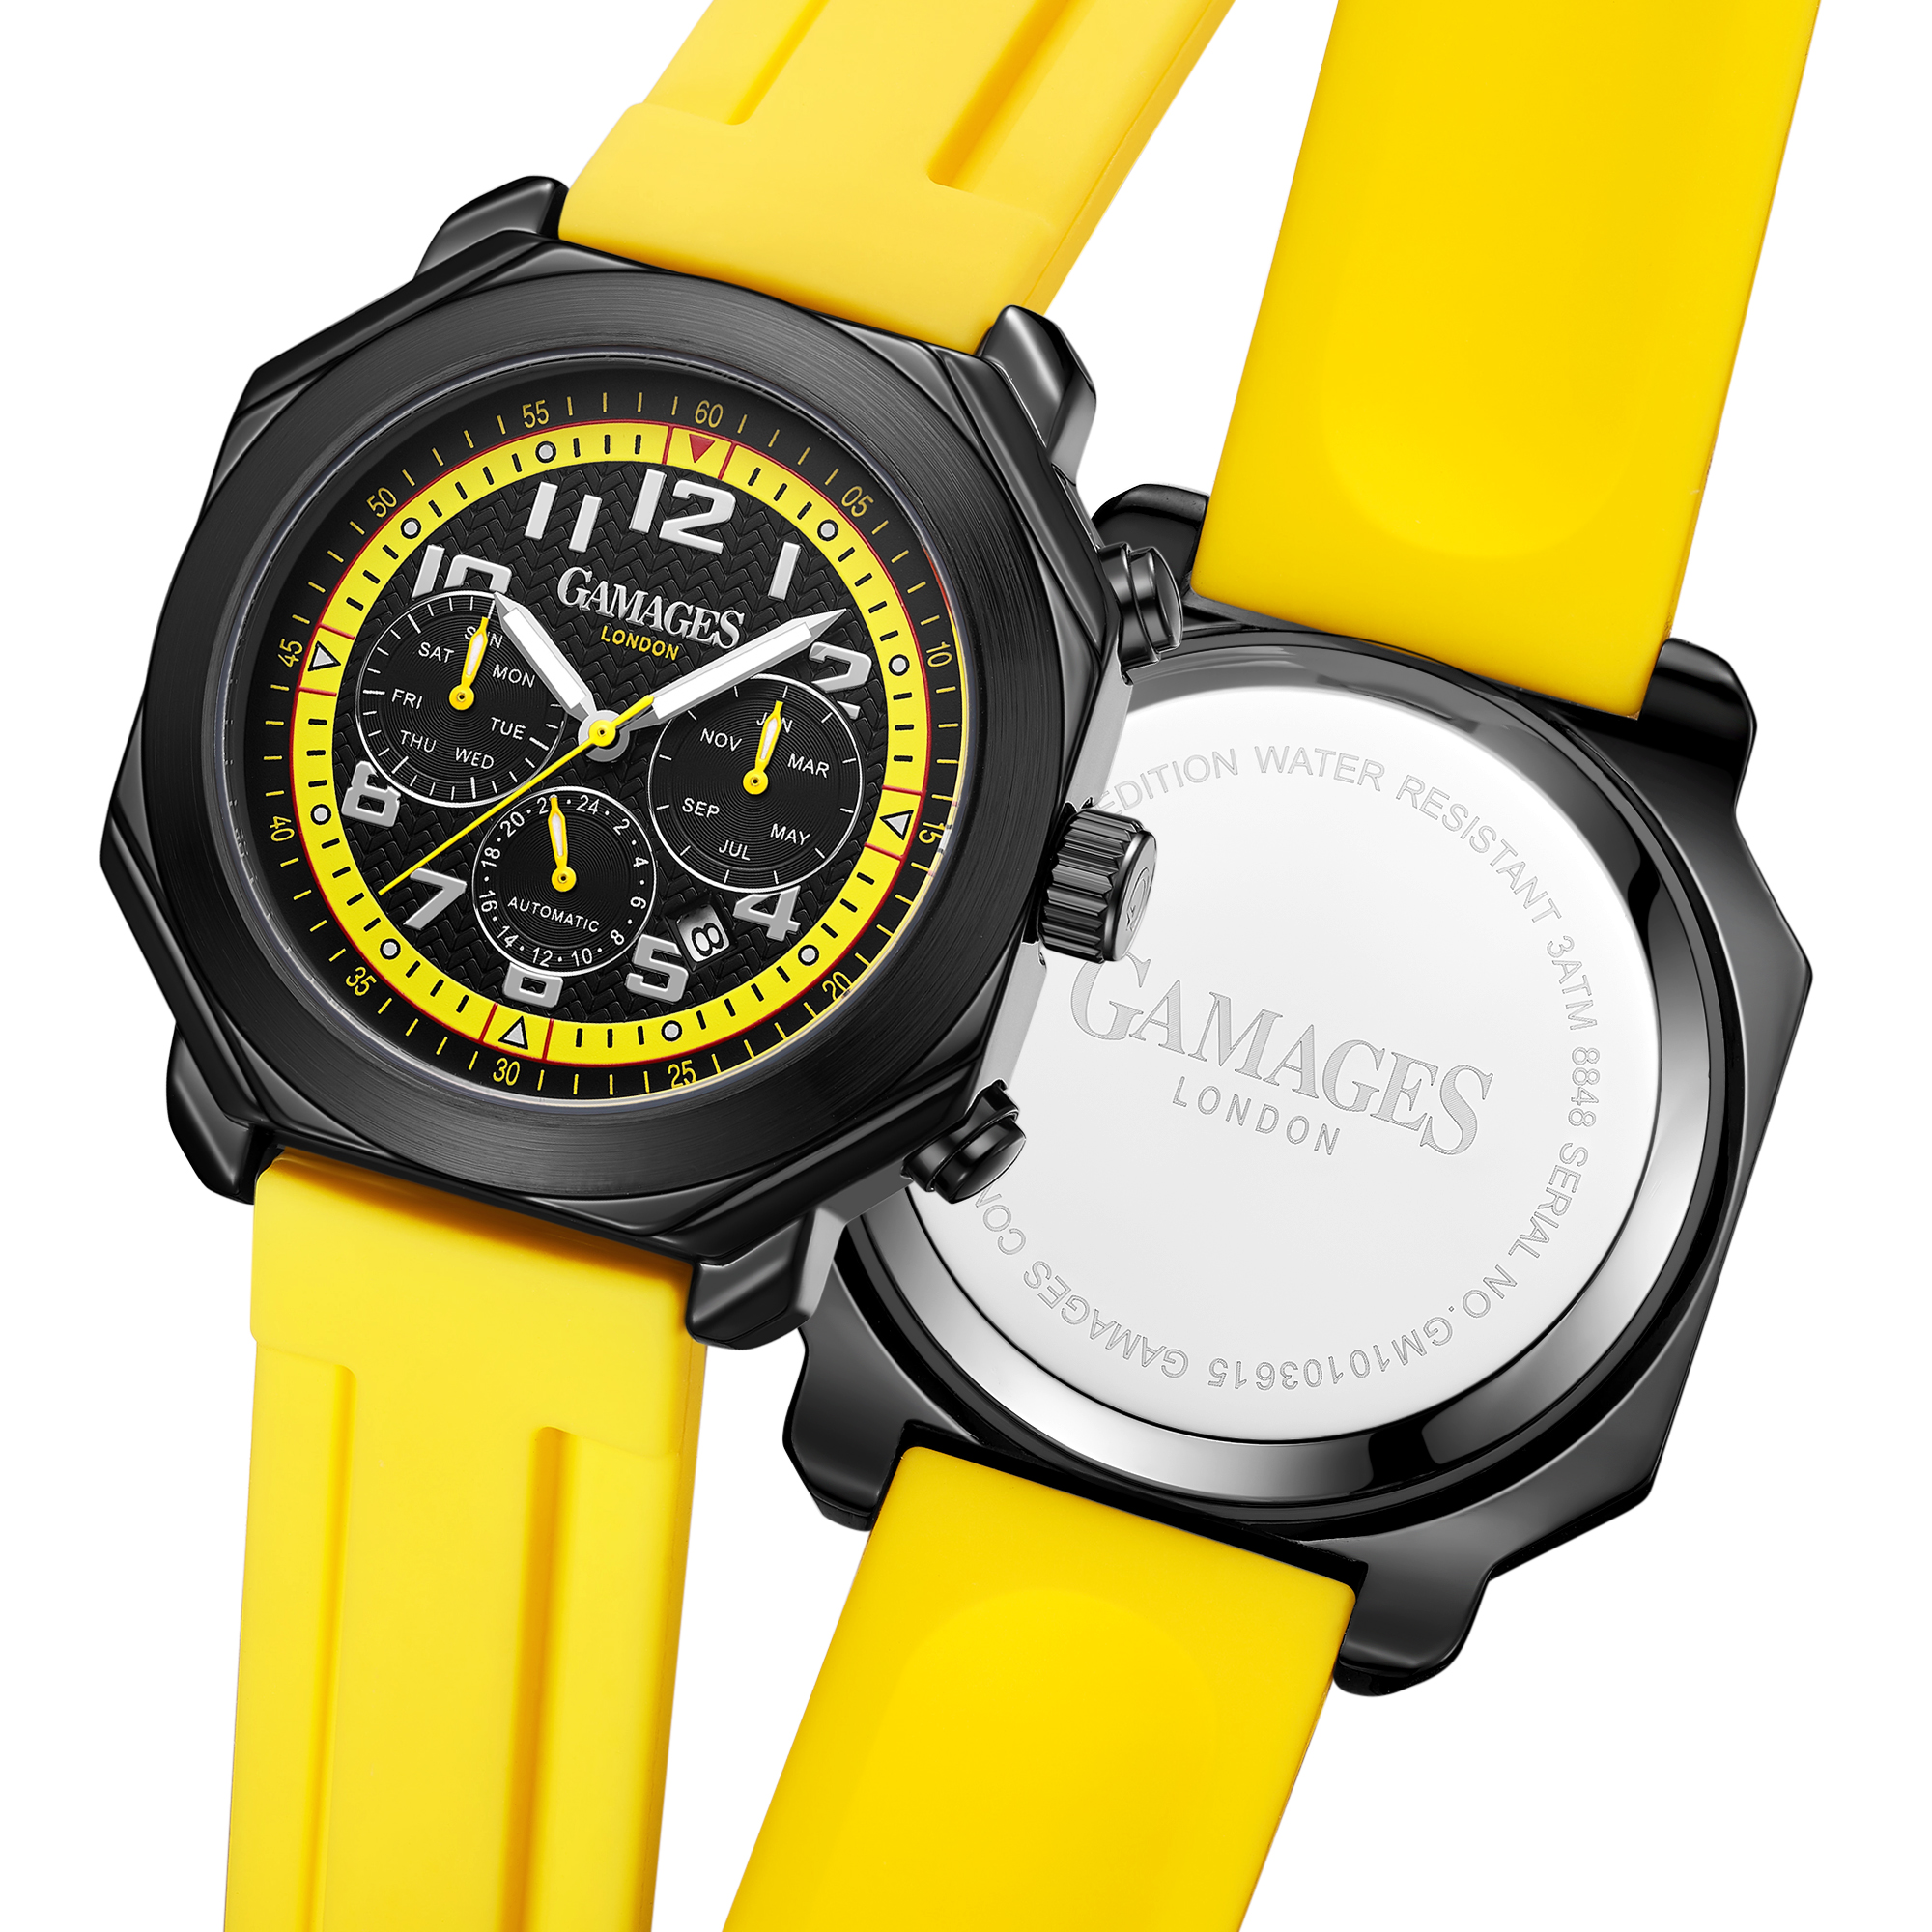 Ltd Edition Hand Assembled Gamages Contemporary Automatic Yellow – 5 Year Warranty & Free Delivery - Image 4 of 5